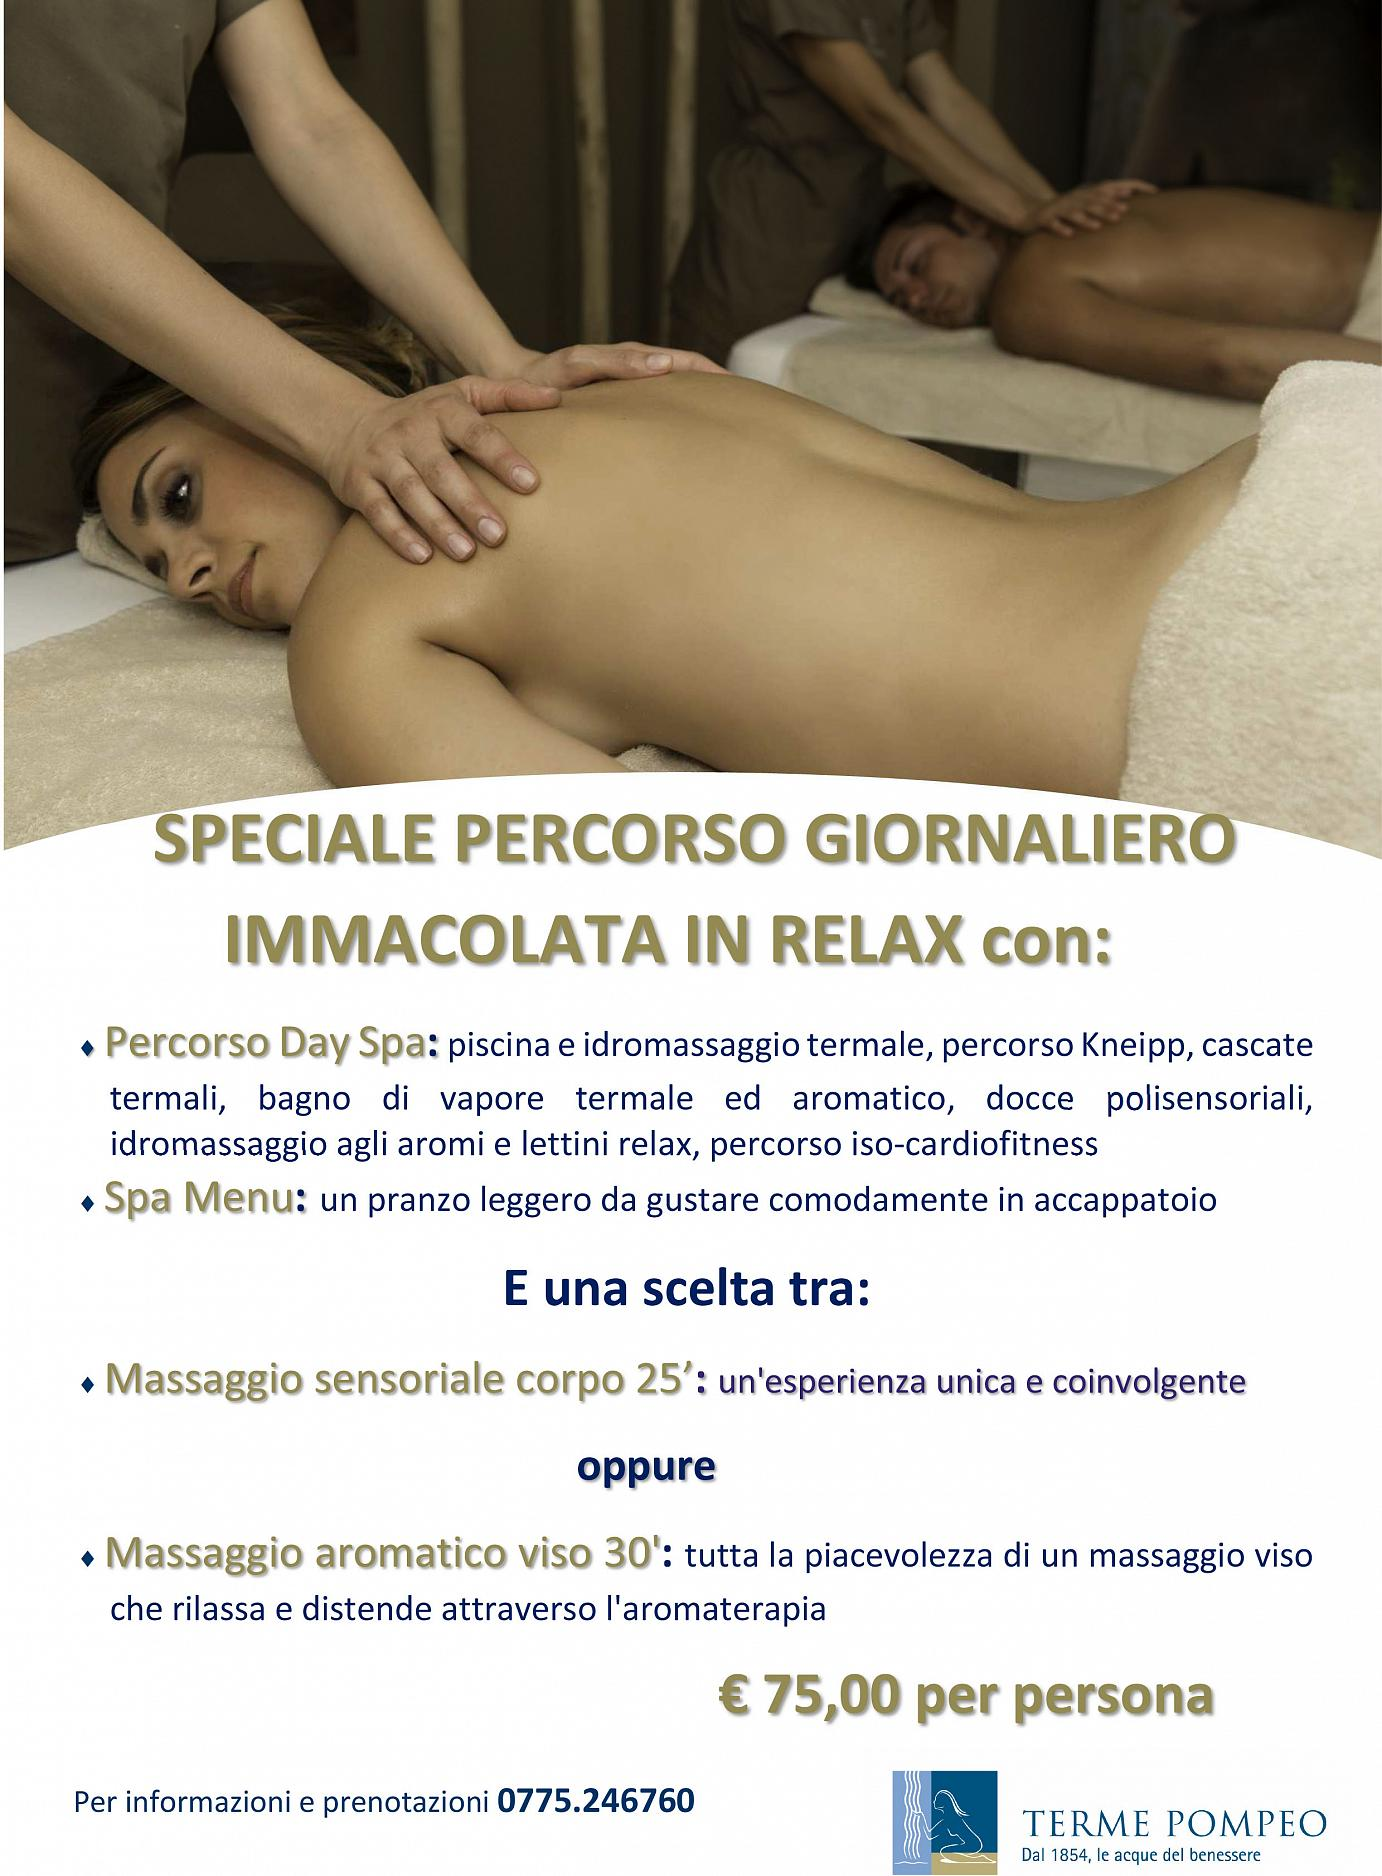 Thermal Day Spa Happy Immacolata in Relax 2018